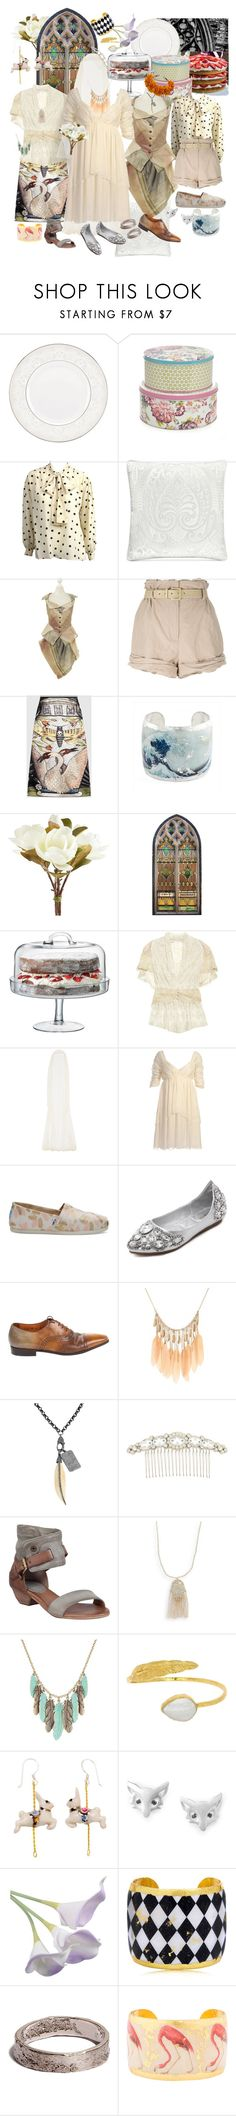 """""""Wedding set 2"""" by amanda-anda-panda ❤ liked on Polyvore featuring Kate Spade, At Home with Ashley Thomas, Yves Saint Laurent, J. Queen New York, Vivienne Westwood, Moschino, Gucci, Pier 1 Imports, LSA International and Anna Sui"""